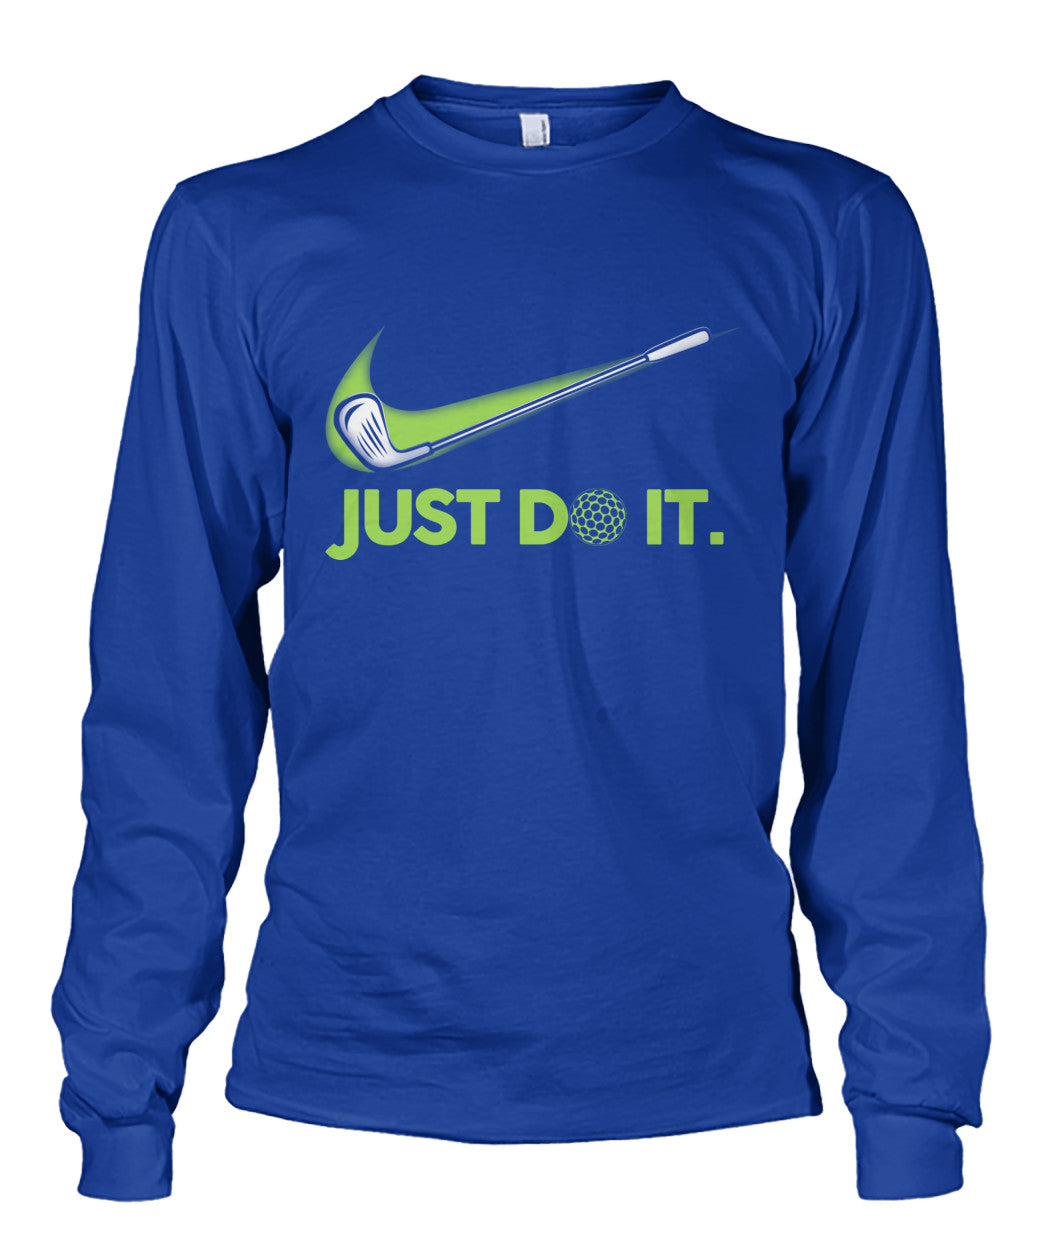 Just DO IT Golf shirt Unisex Long Sleeve-Long Sleeves - AllGolfUSA.COM